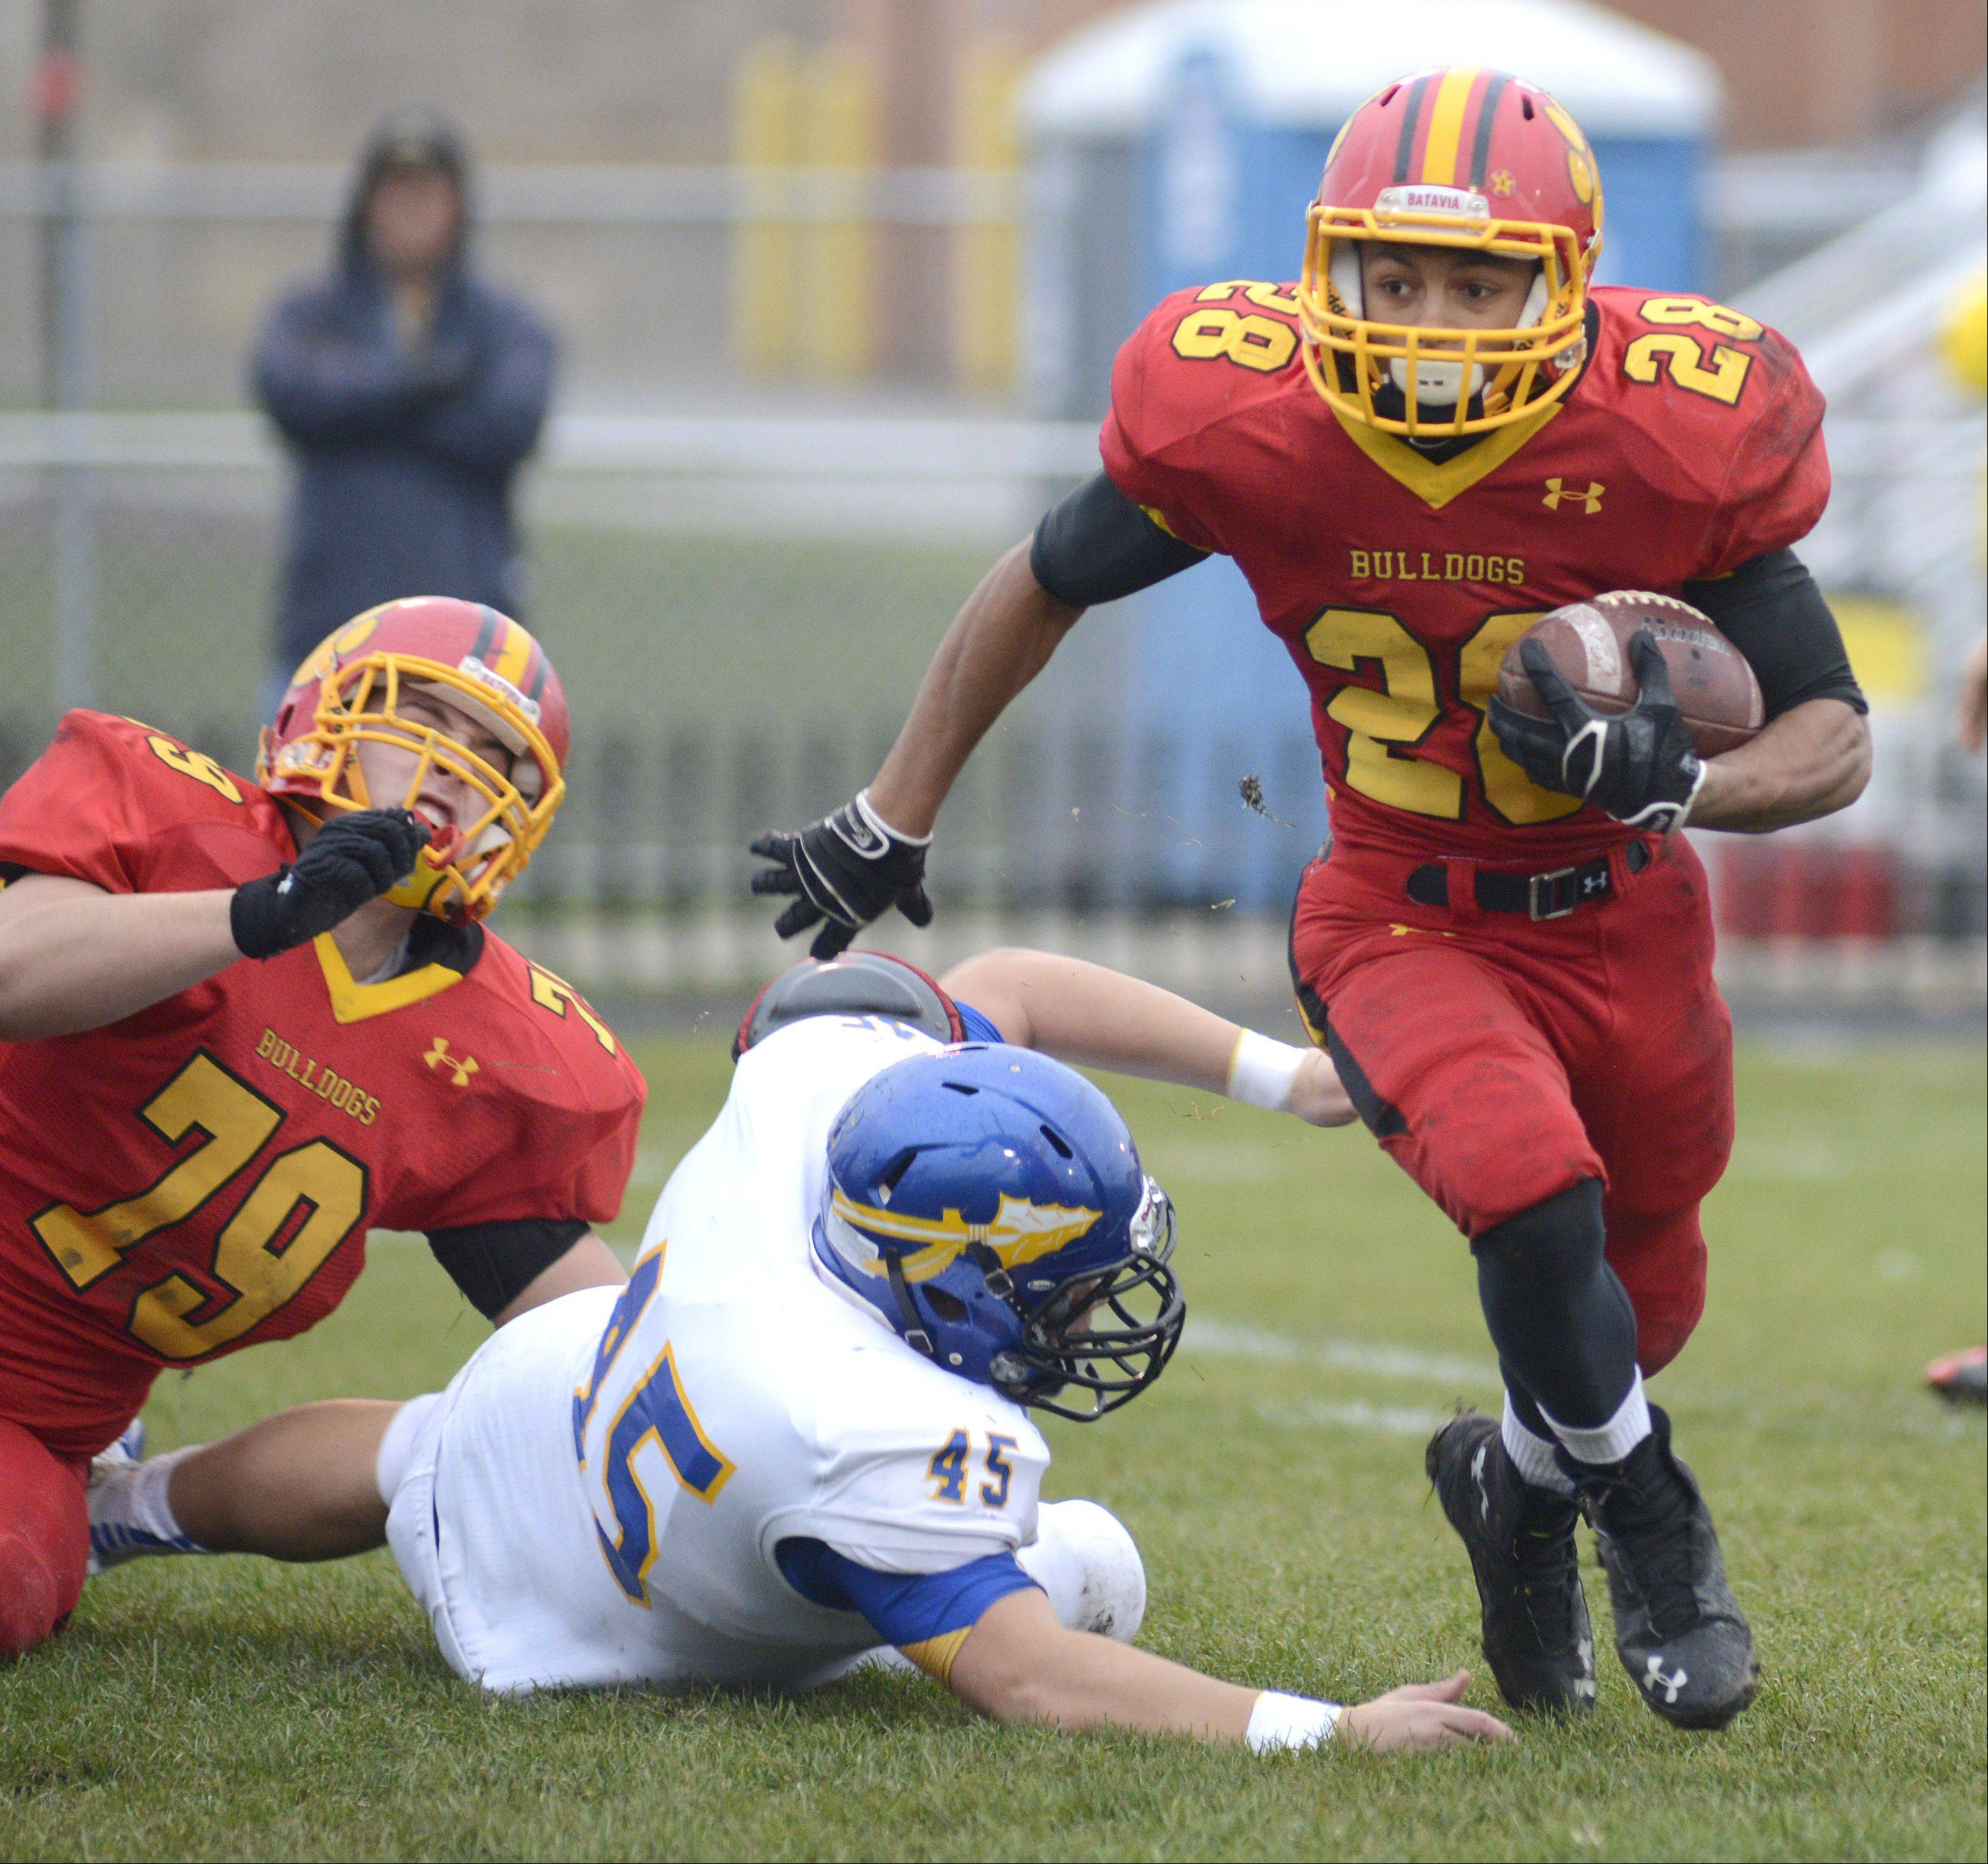 Batavia's Anthony Scaccia sprints from Lake Forest's John Cirame as teammate Max Heidgen takes him down in the first quarter of the Class 6A quarterfinal on Saturday, November 16.